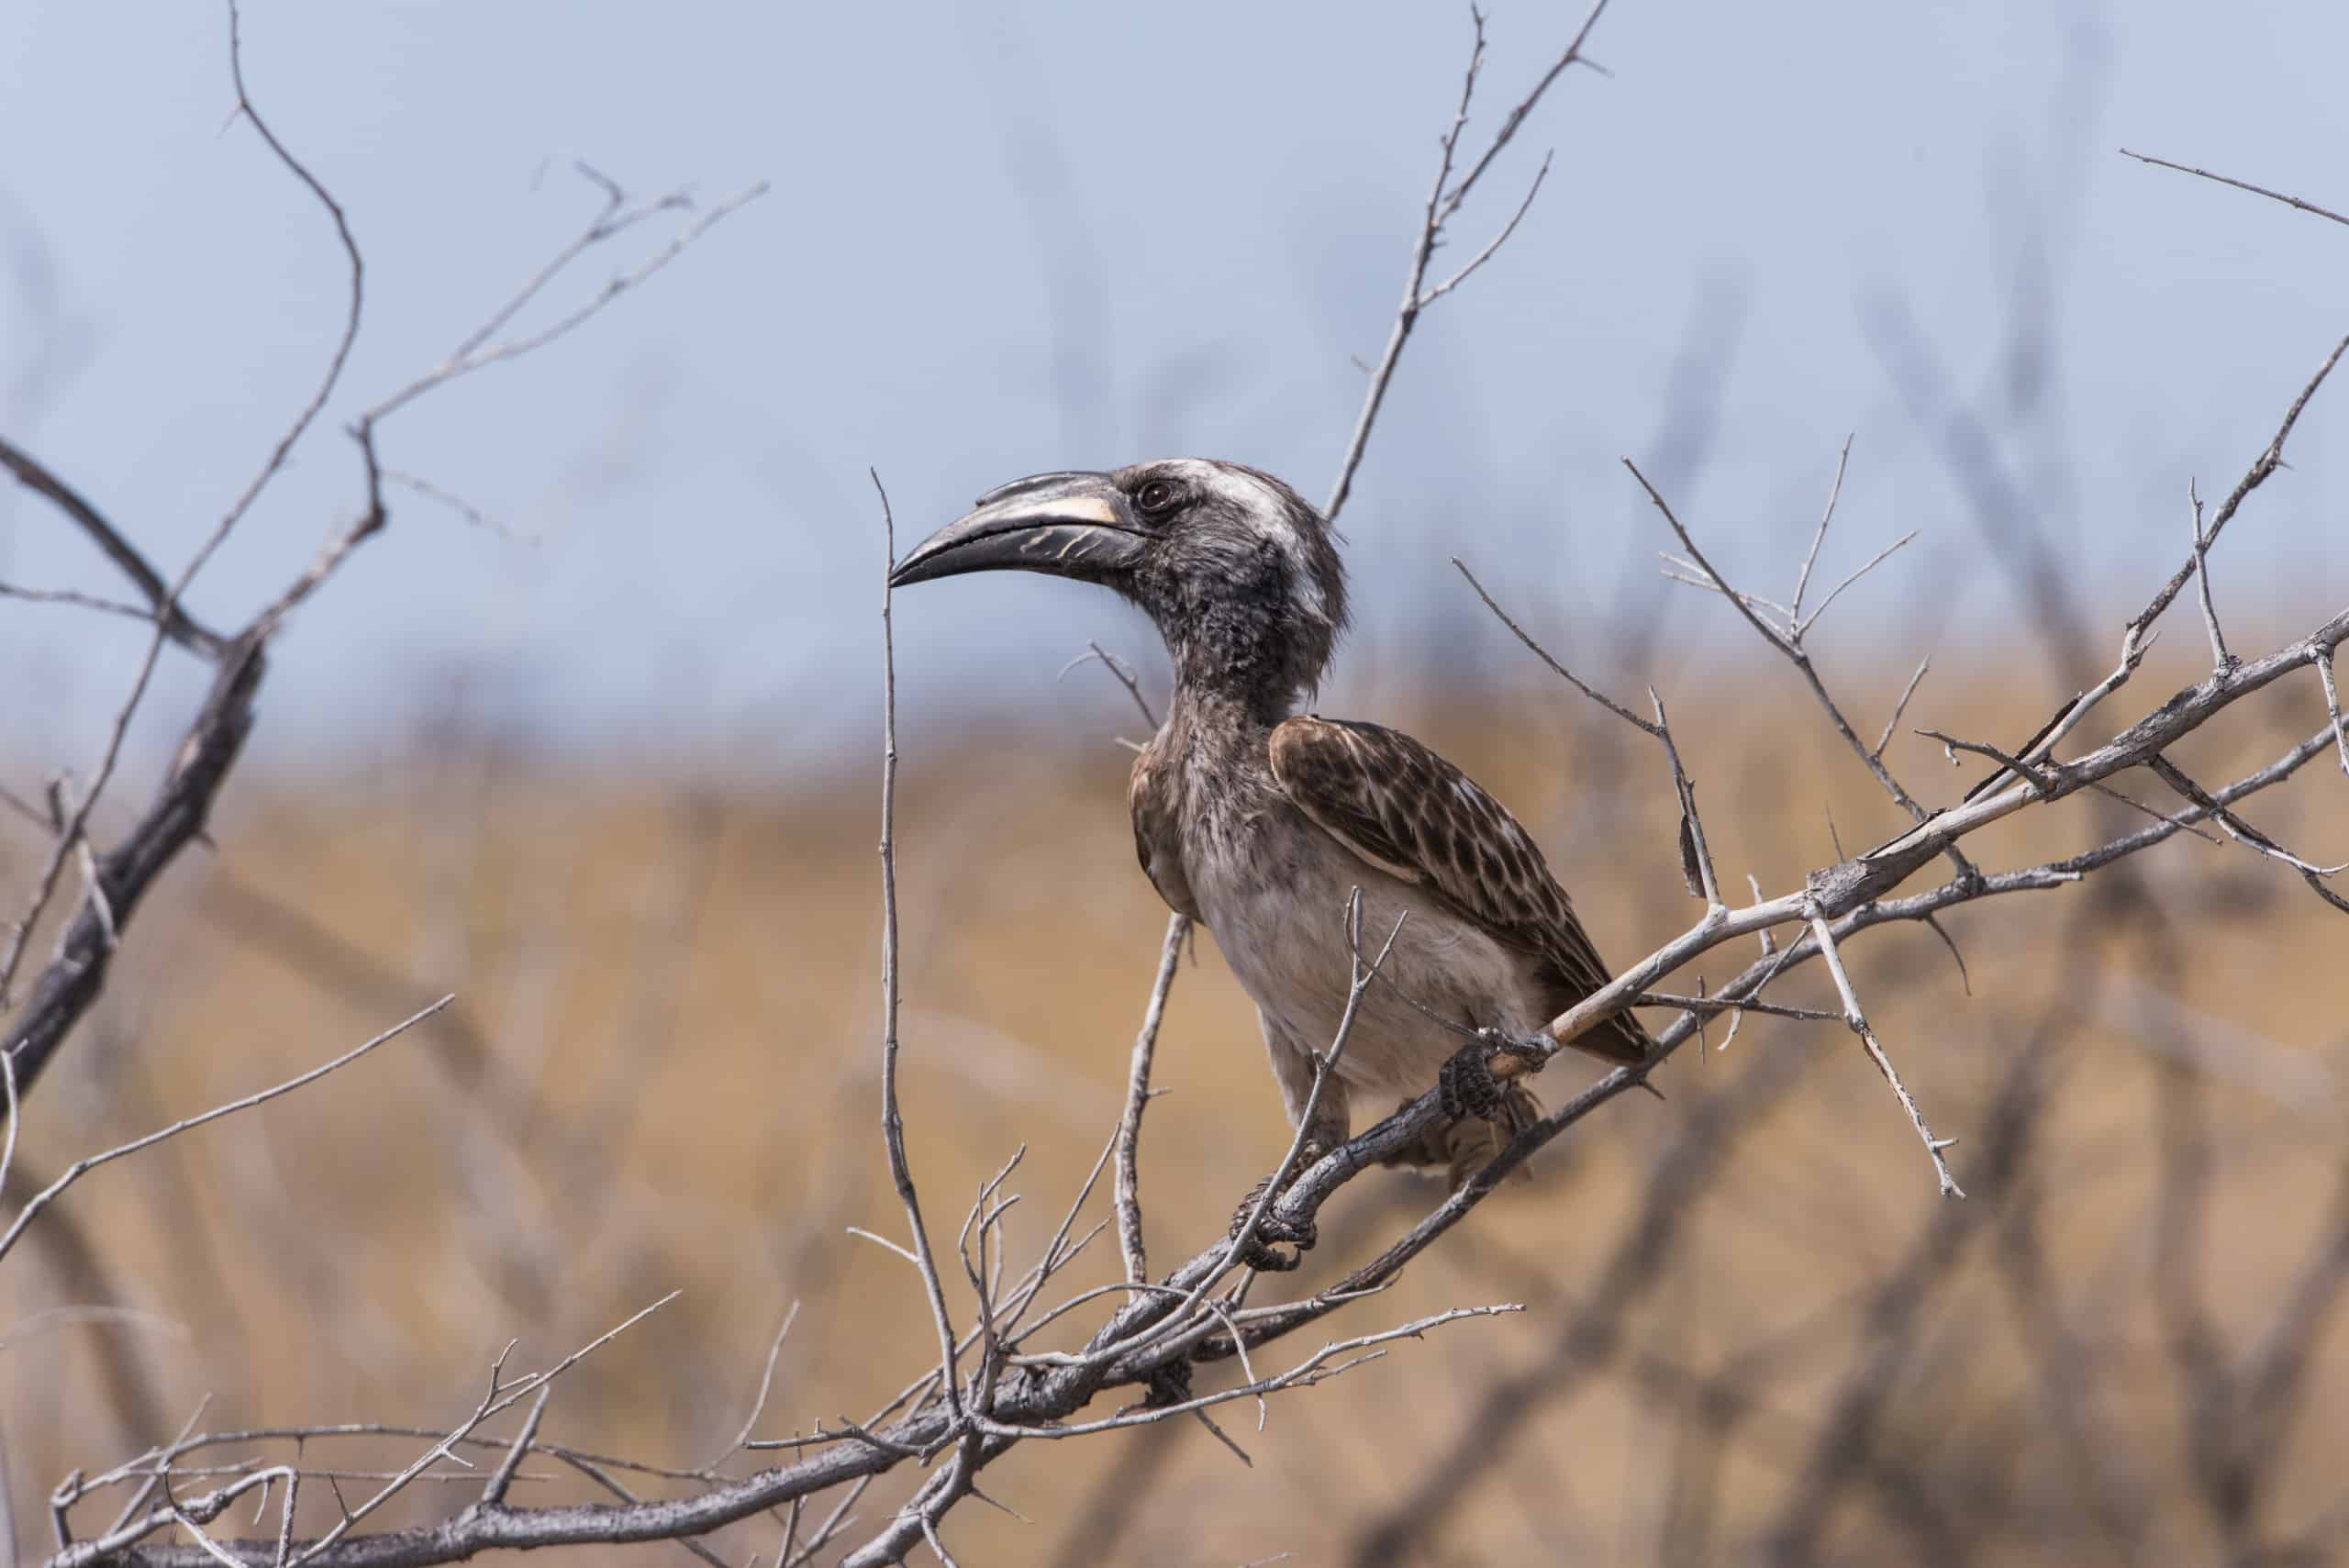 African grey hornbill (Tockus nasutus) perched on bare branch, Etosha National Park, Namibia